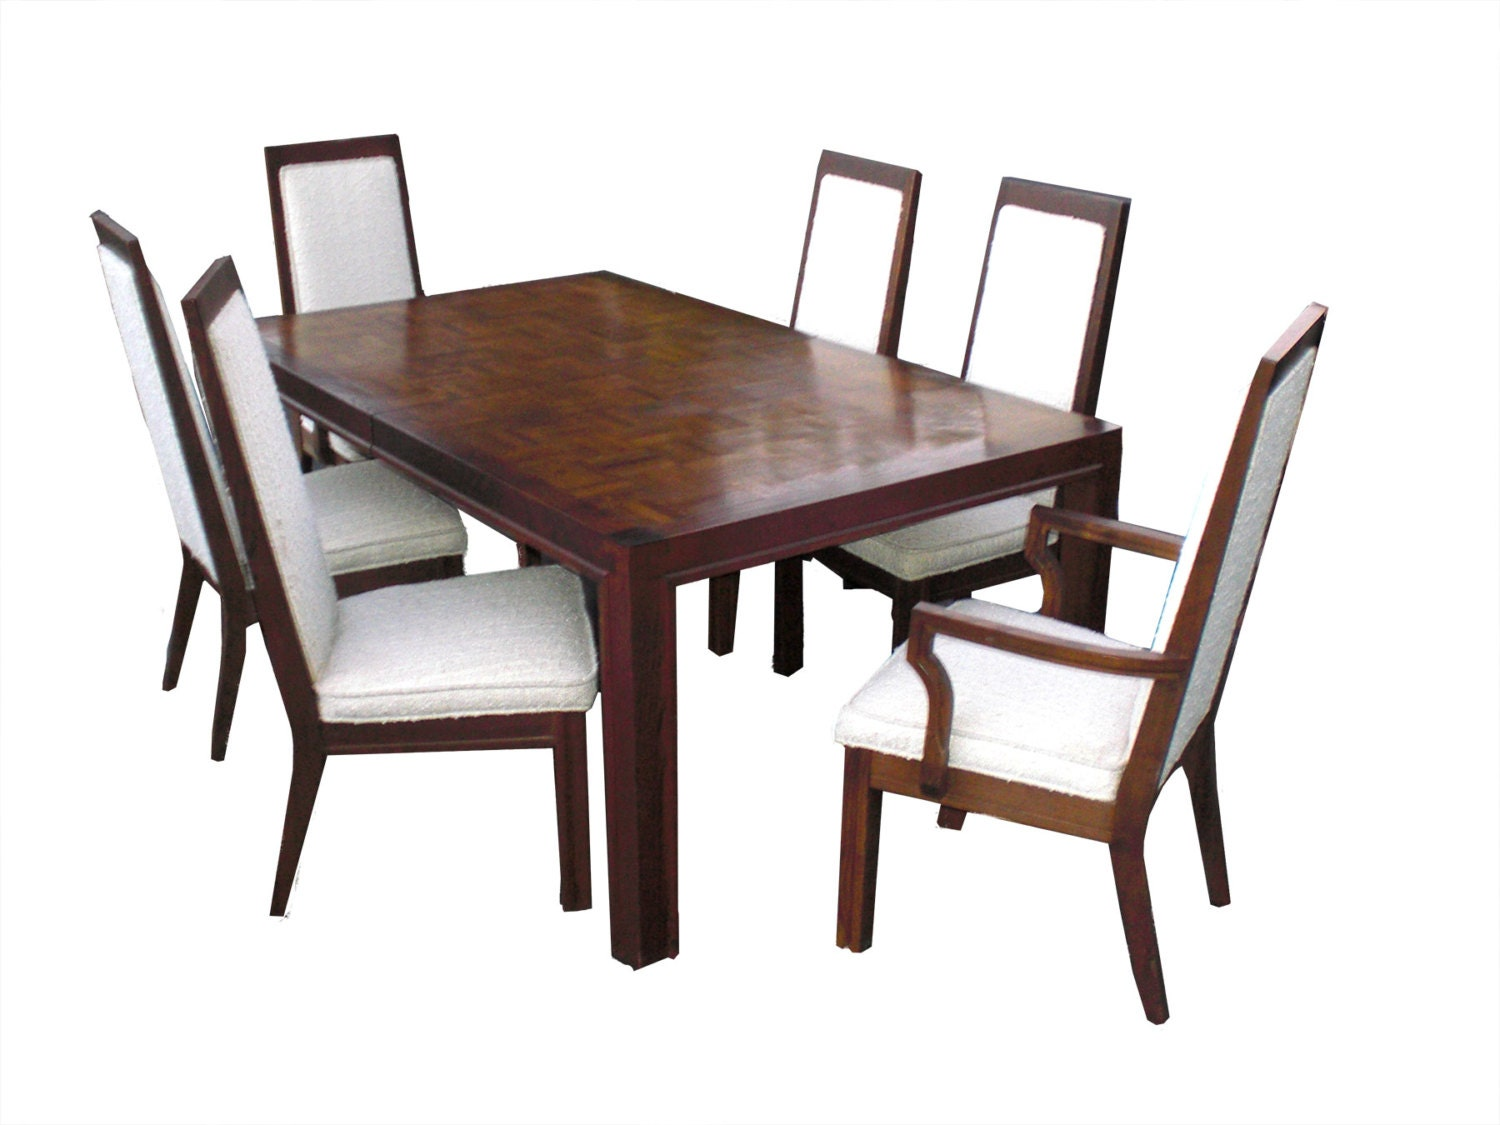 Mid Century Modern Wood Dining Table W 6 Chairs By Formica Made In